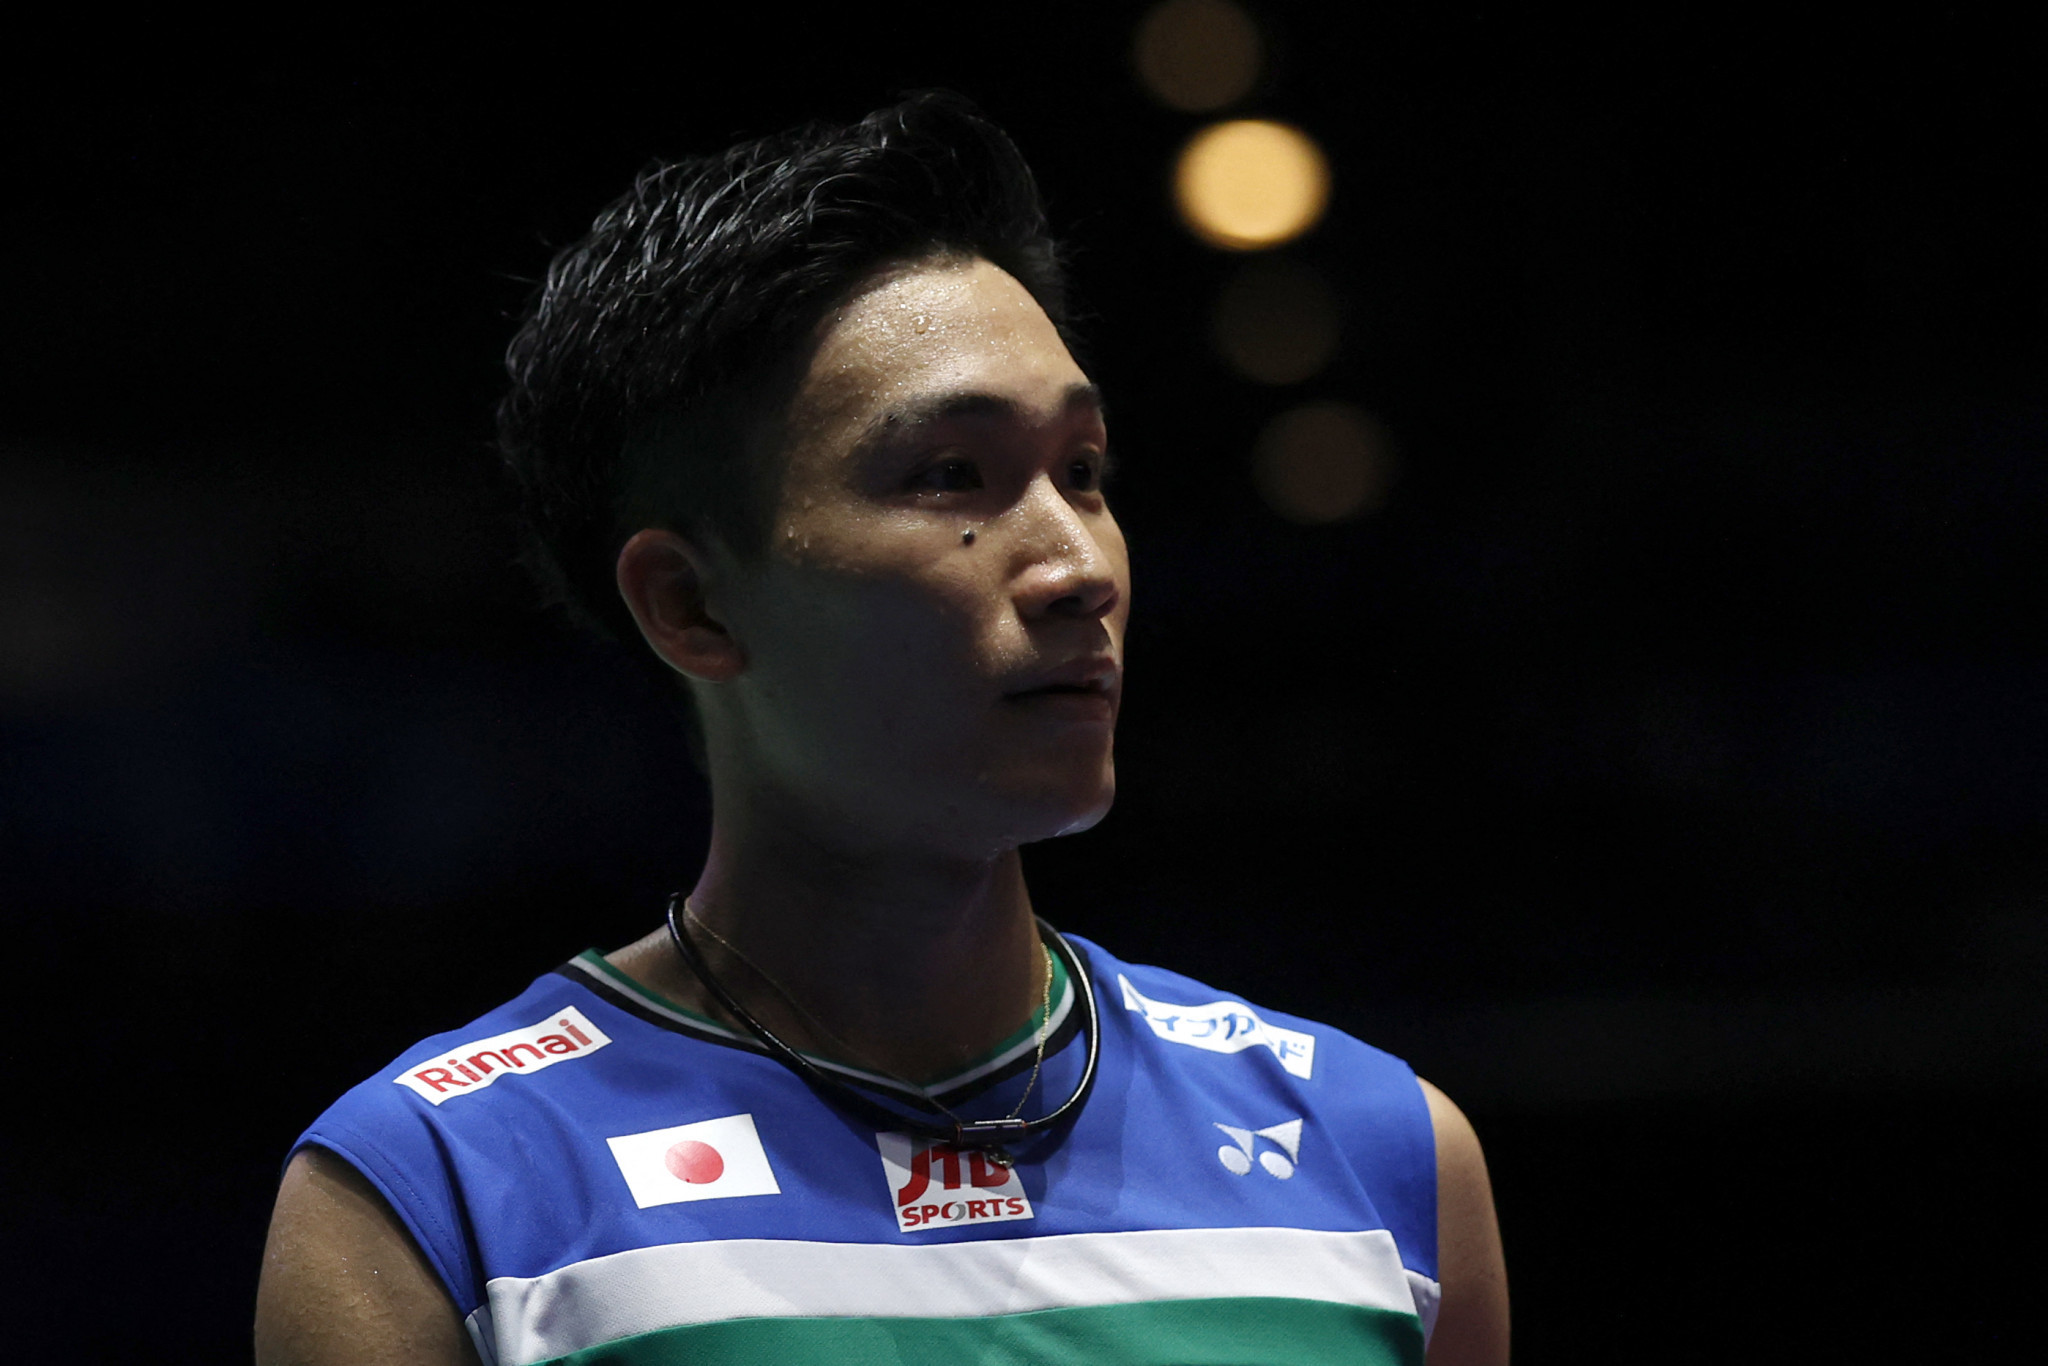 Momota knocked out on day three of All England Open Badminton Championships